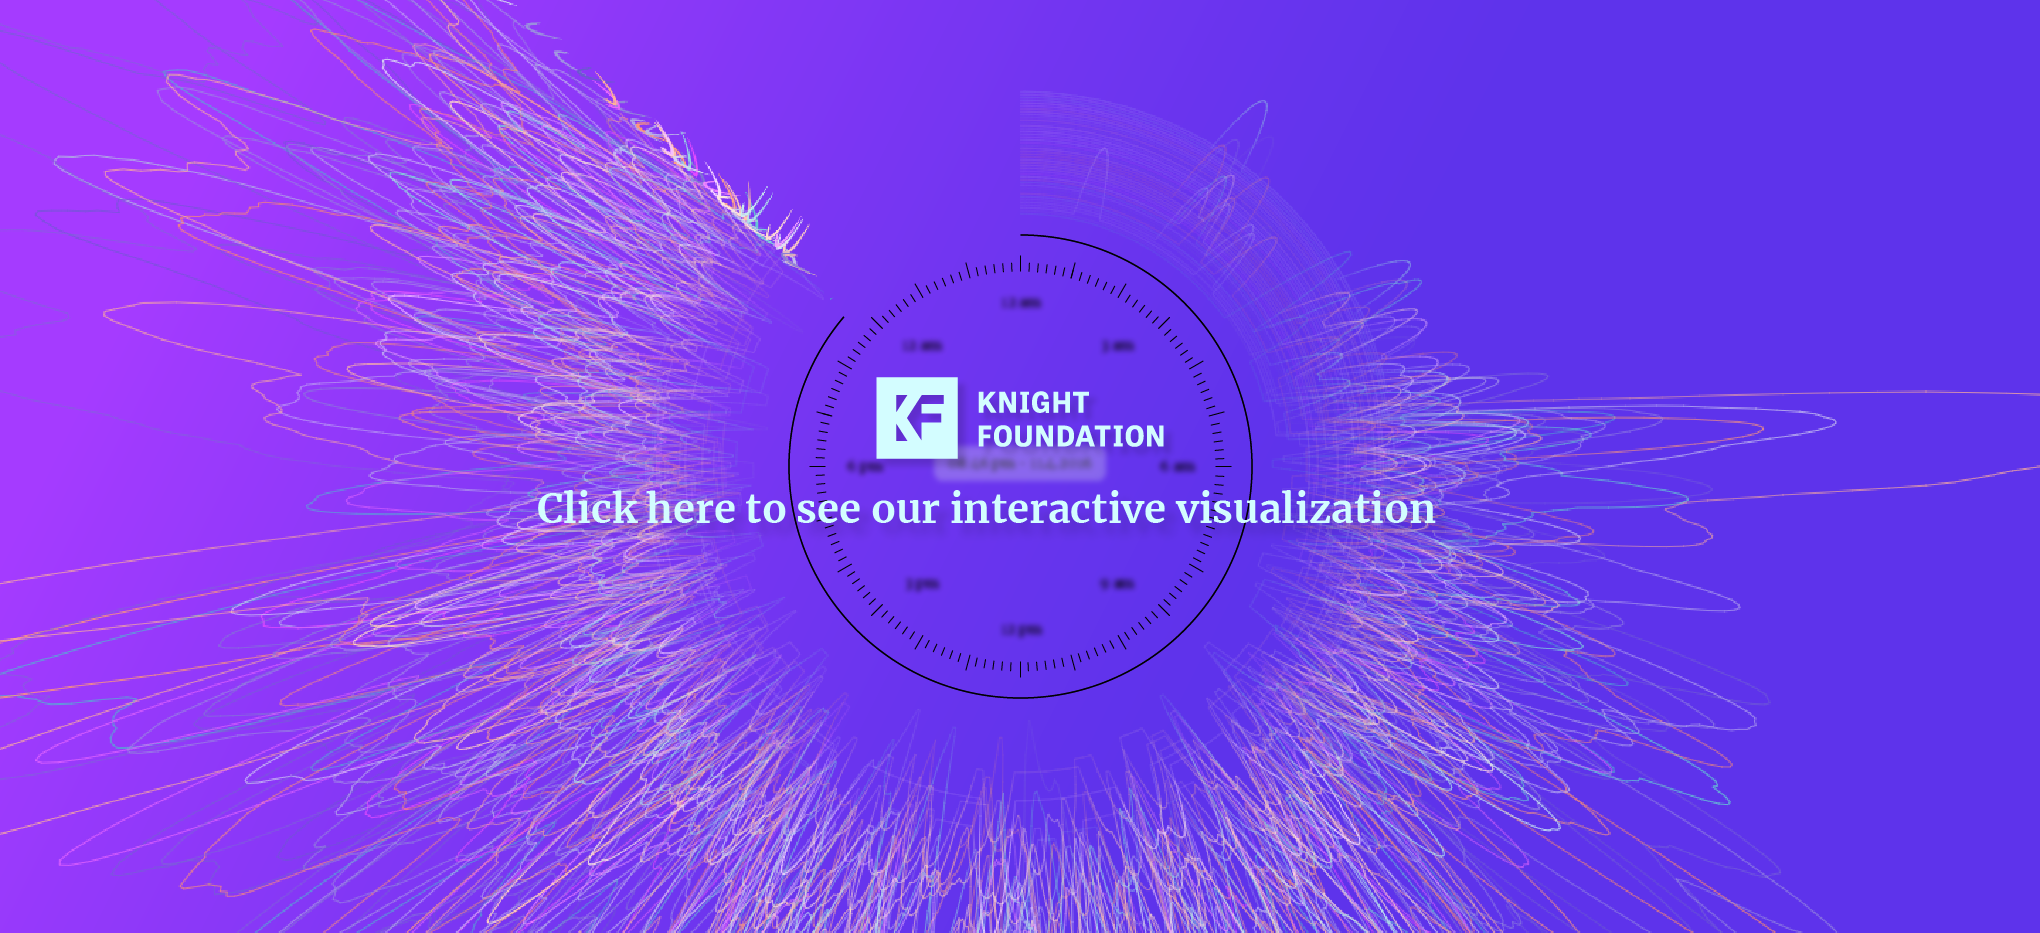 "<p><a href=""https://www.knightfoundation.org/features/misinfo"">Click here to explore our visualization. </a></p>"